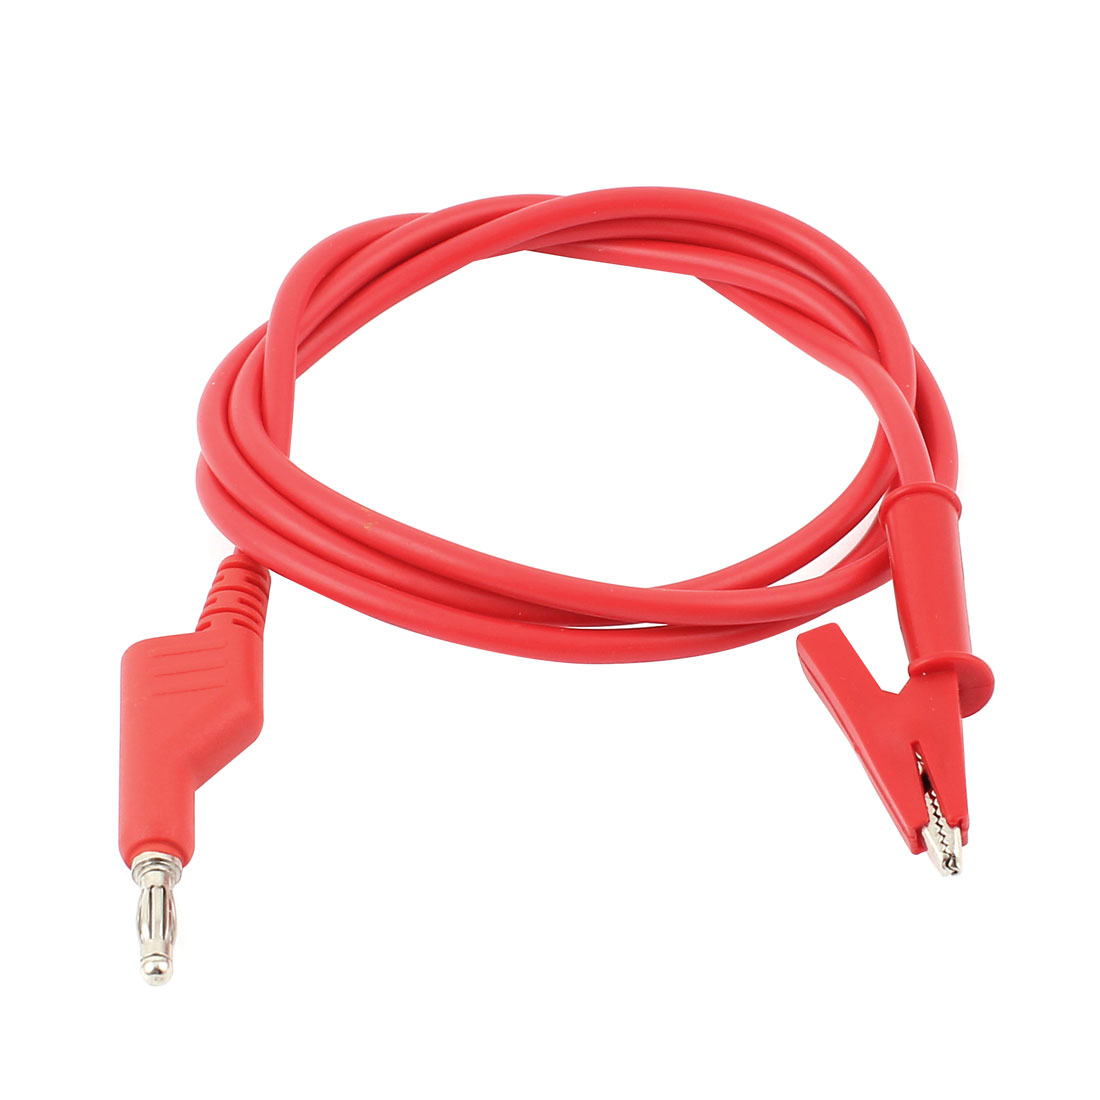 Red Alligator Clip Test Lead to Banana Connector Probe Cable 110cm Long